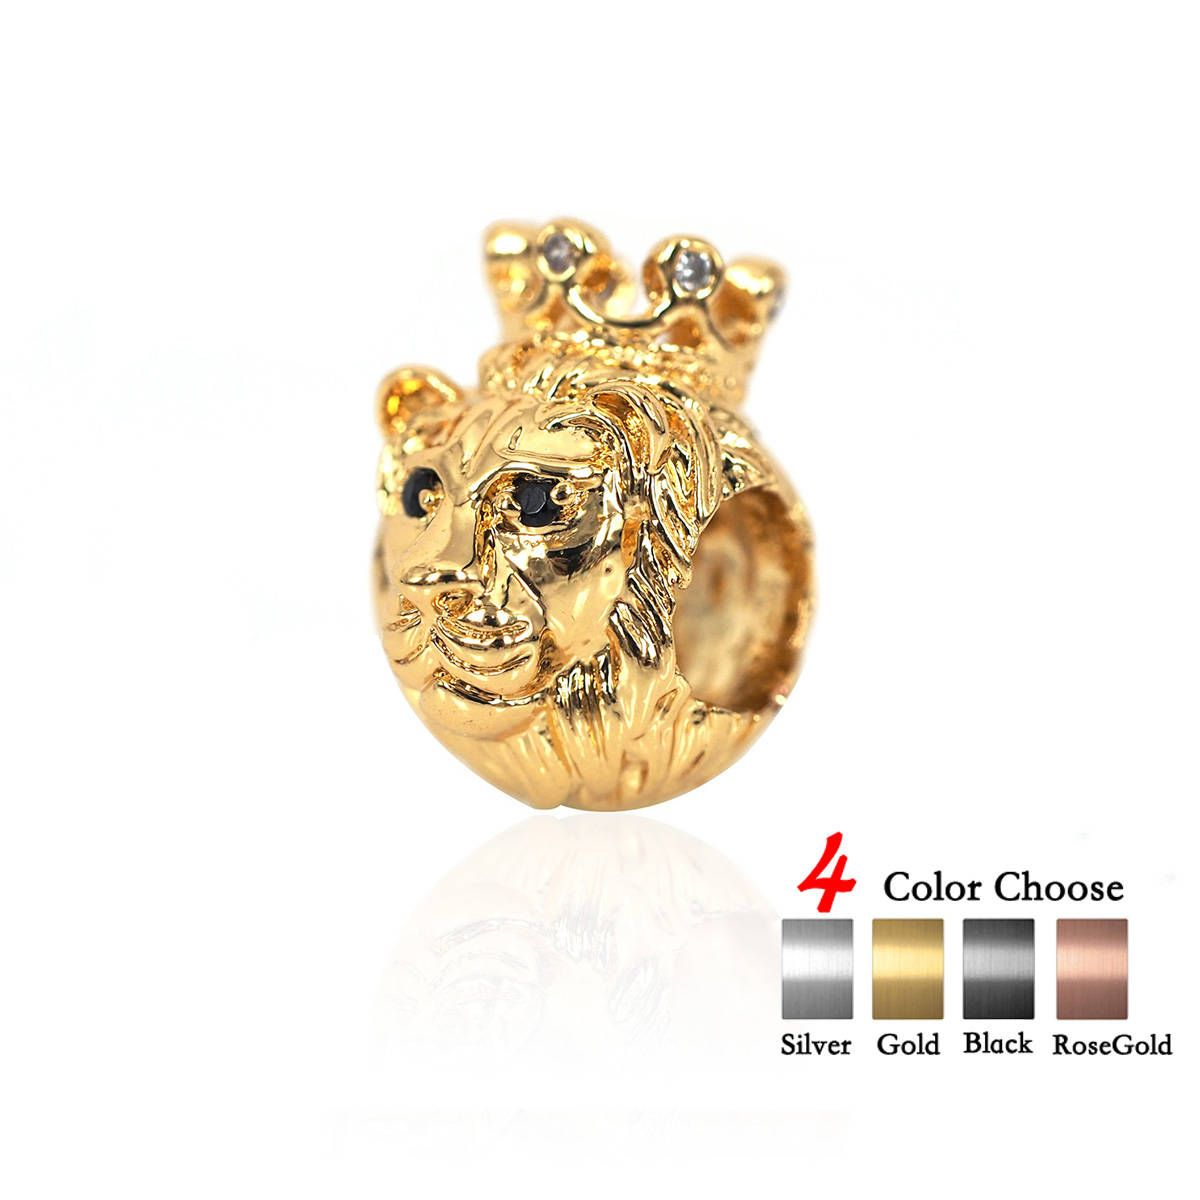 Beads Lovely Cz King Crown Lion Head Spacer Beads Micro Pave Cubic Zirconia Charm Beads Large Hole Beads Mens Jewelry Making Findings